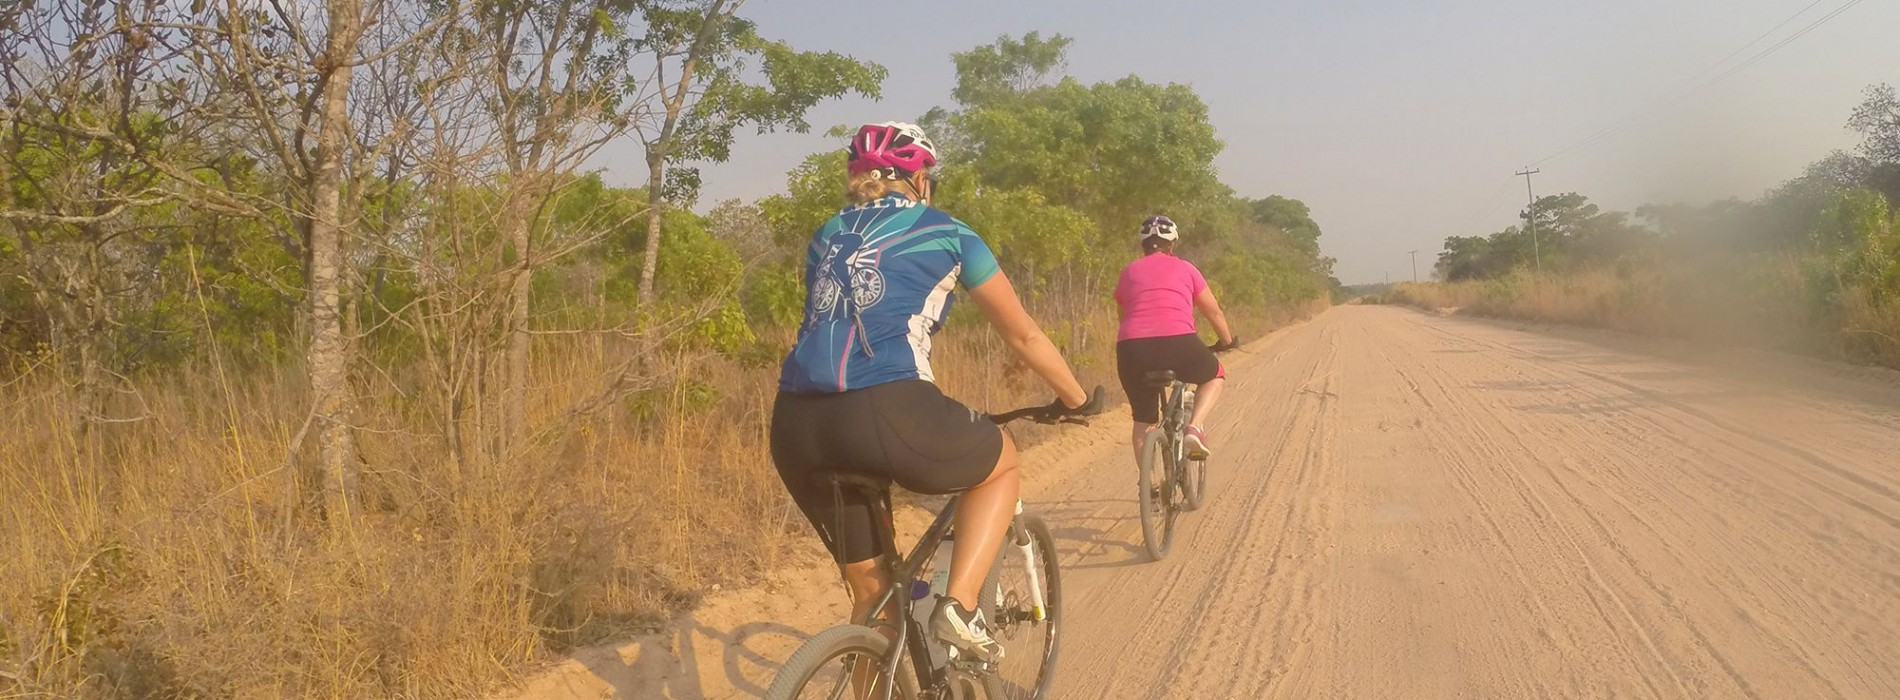 Riding on dirt roads in Zambia